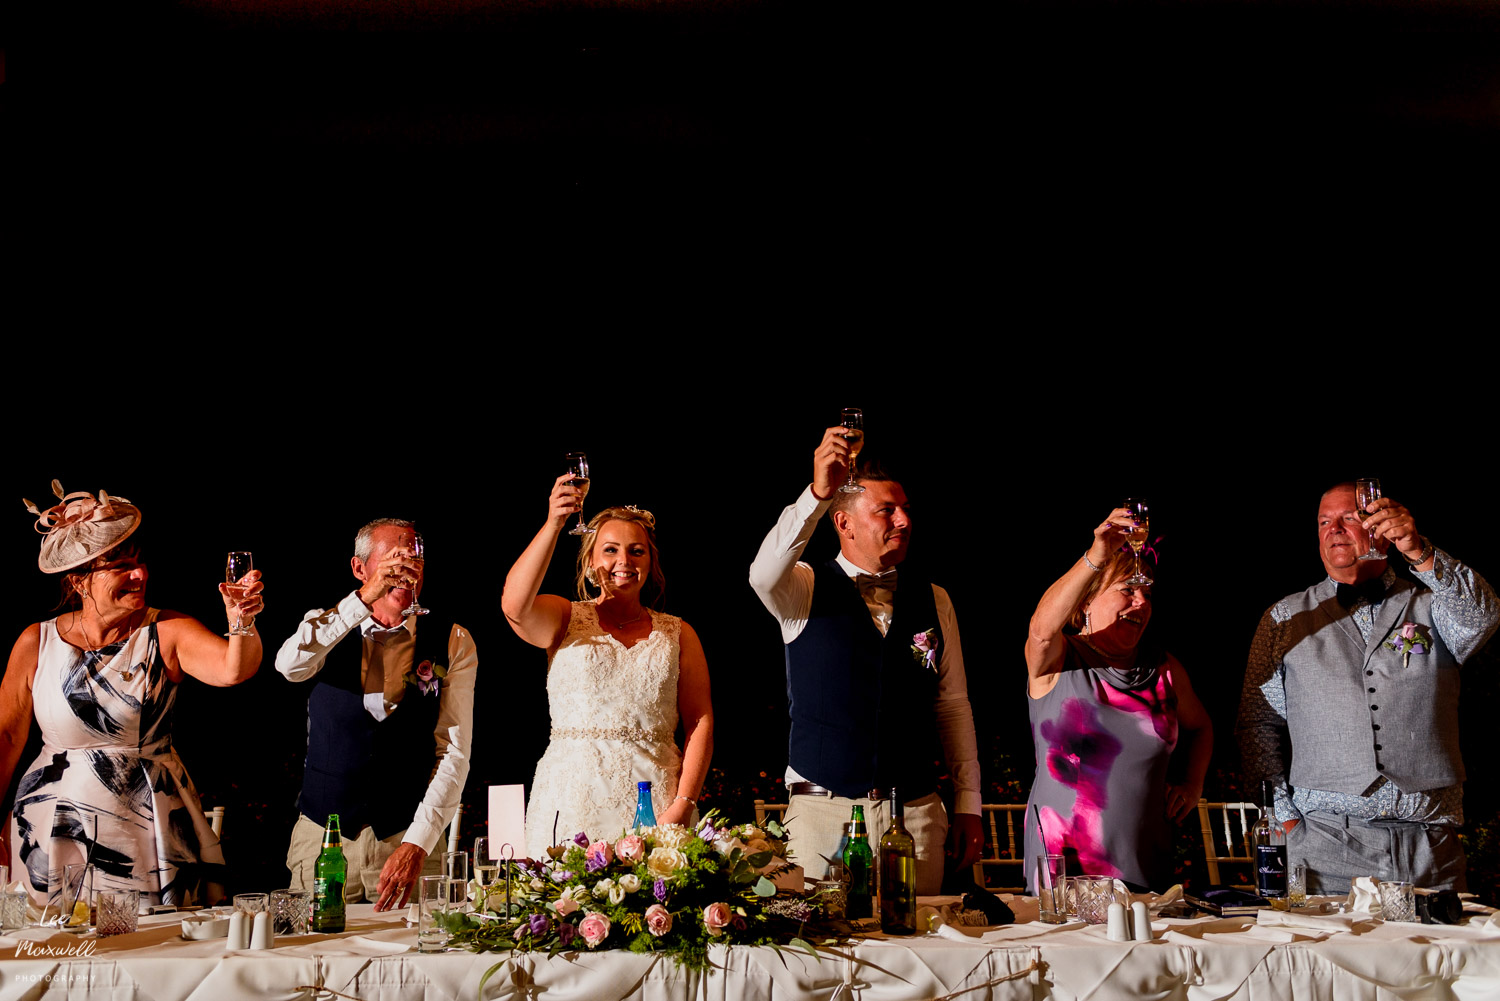 Wedding toast in Greece